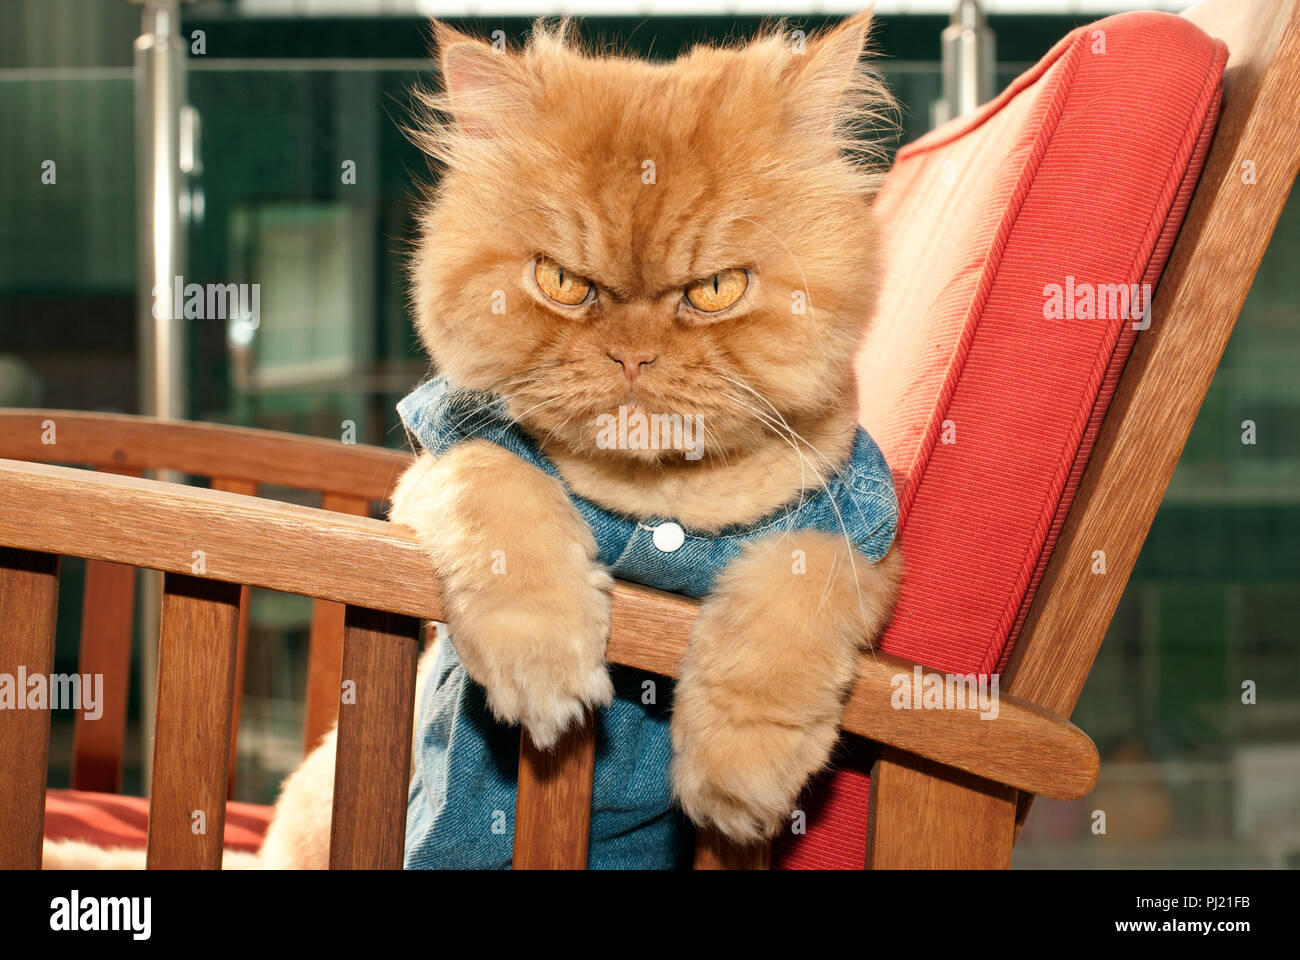 Red traditional  Persian cat sitting on chair - Stock Image